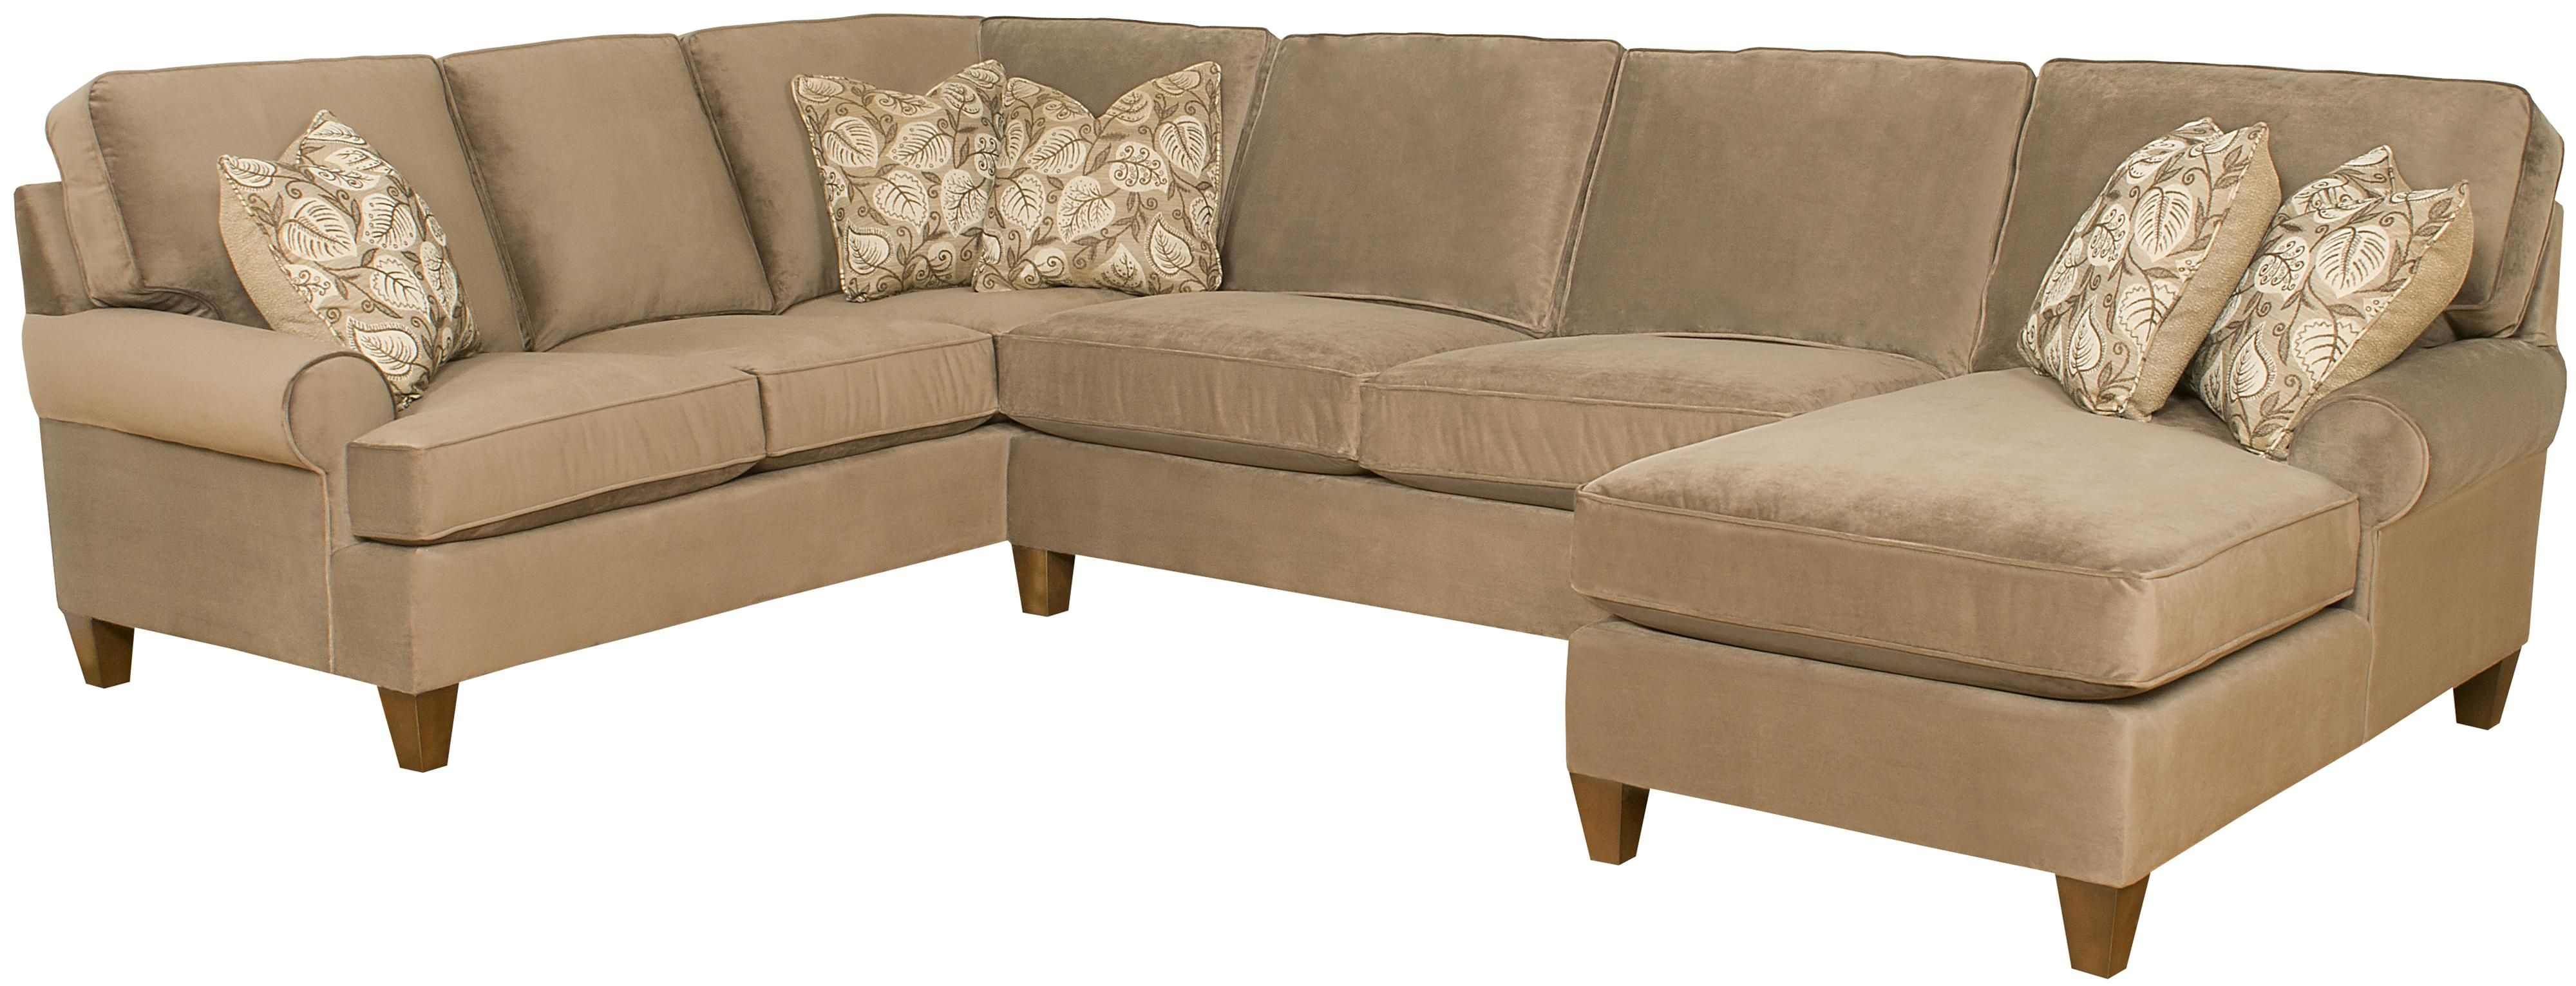 Bentley Sofa By King Hickory Lifestyle Solutions Convertible Sofas Review Home Co